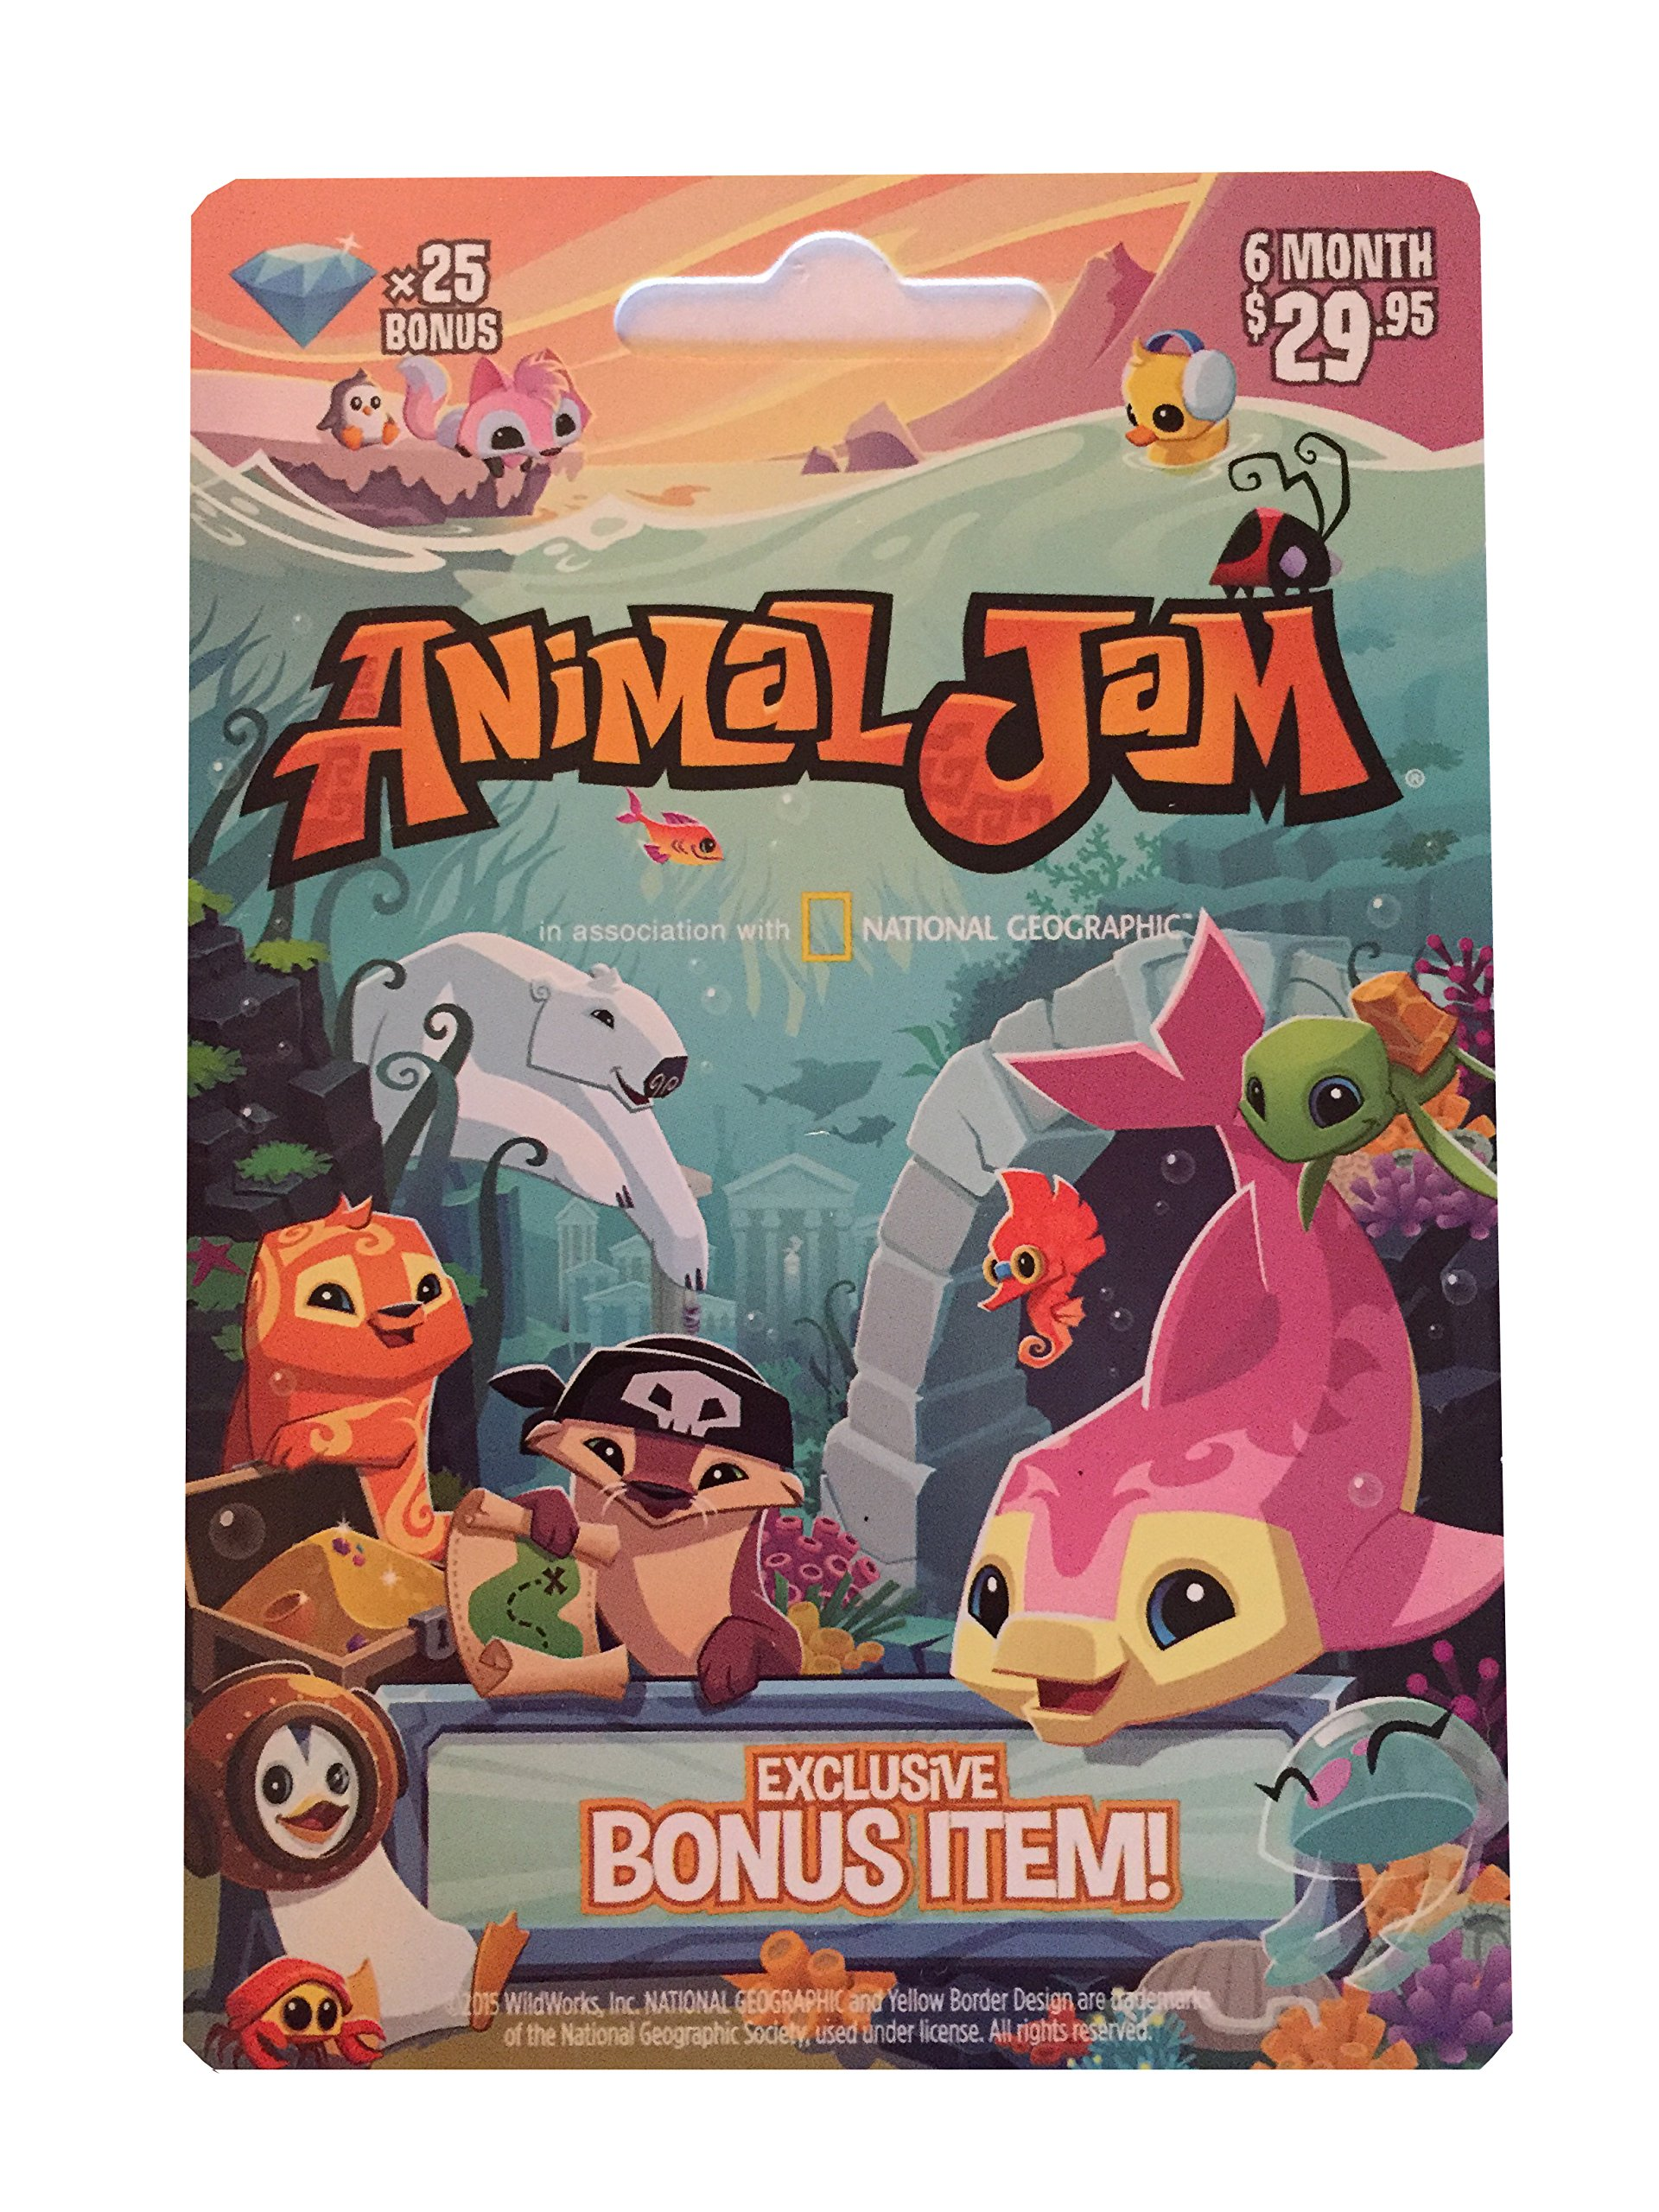 Image of: Snow Leopard National Geographic Animal Jam Online Game Card 25 Diamonds Month Membership Kangaroo Arctic Wolf Snow Leopard Or Lion By National Geographic Okclipsnet Amazoncom National Geographic Animal Jam Online Game Card 25